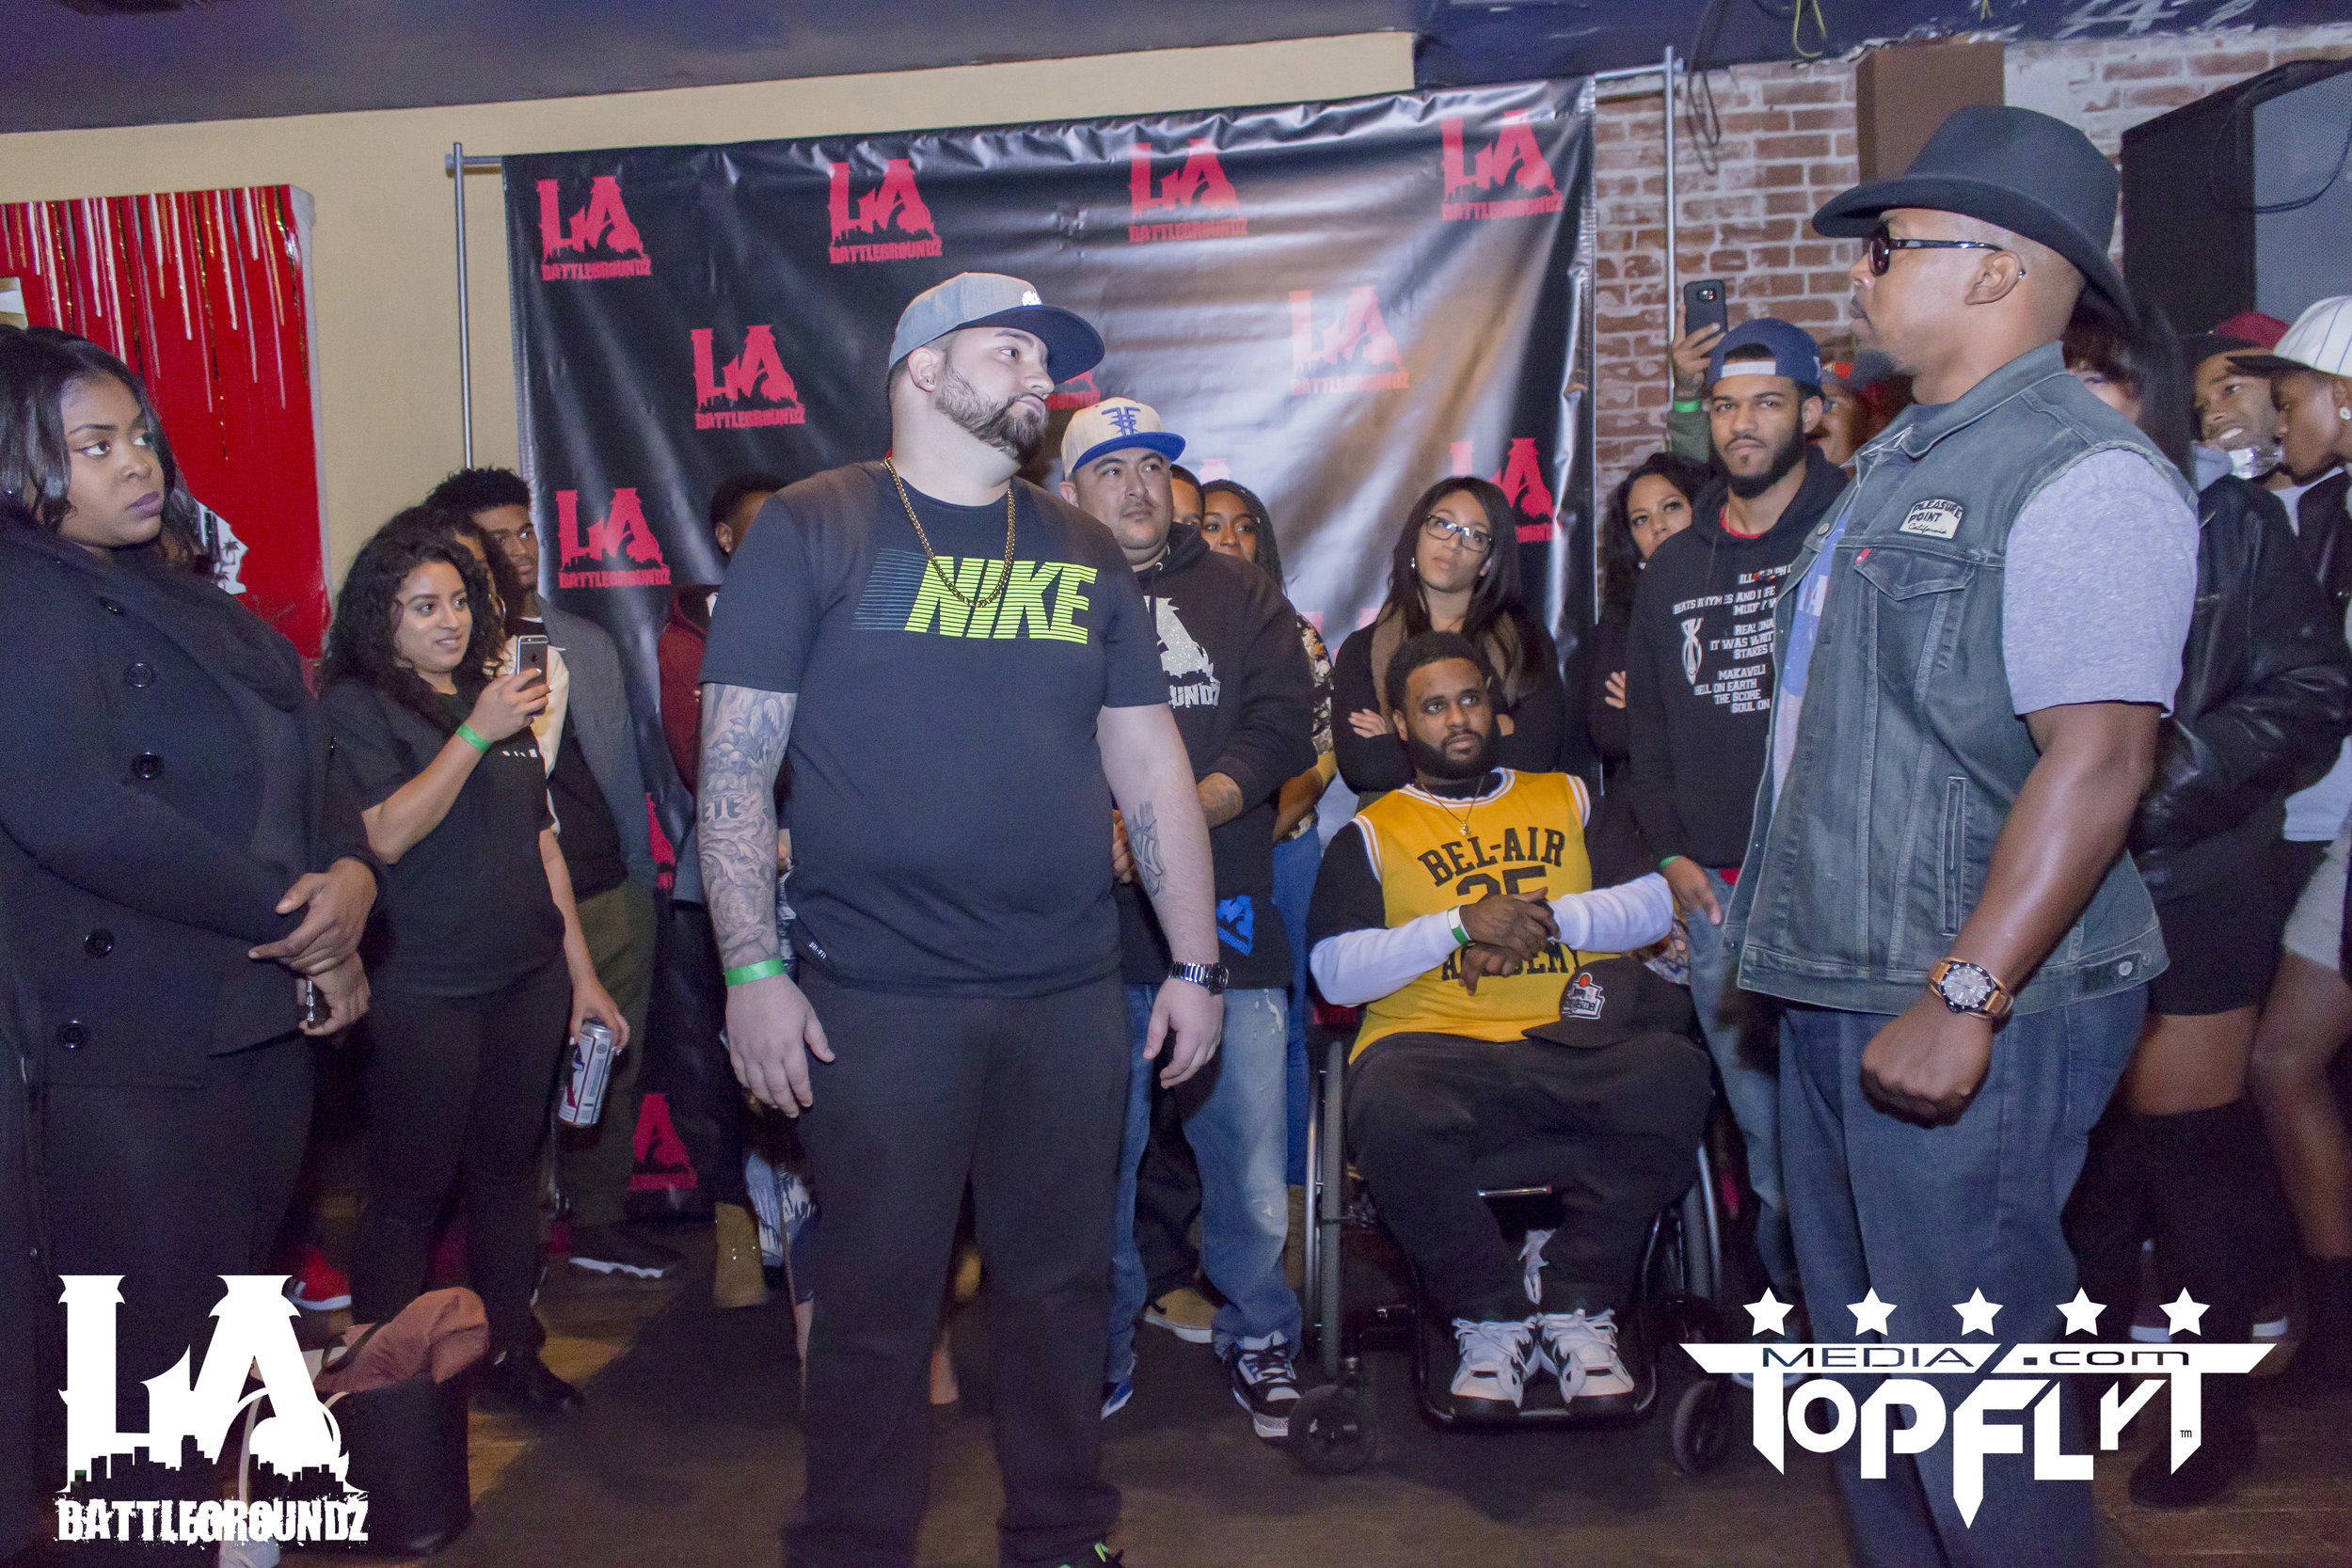 LA Battlegroundz - Decembarfest - The Christening_52.jpg